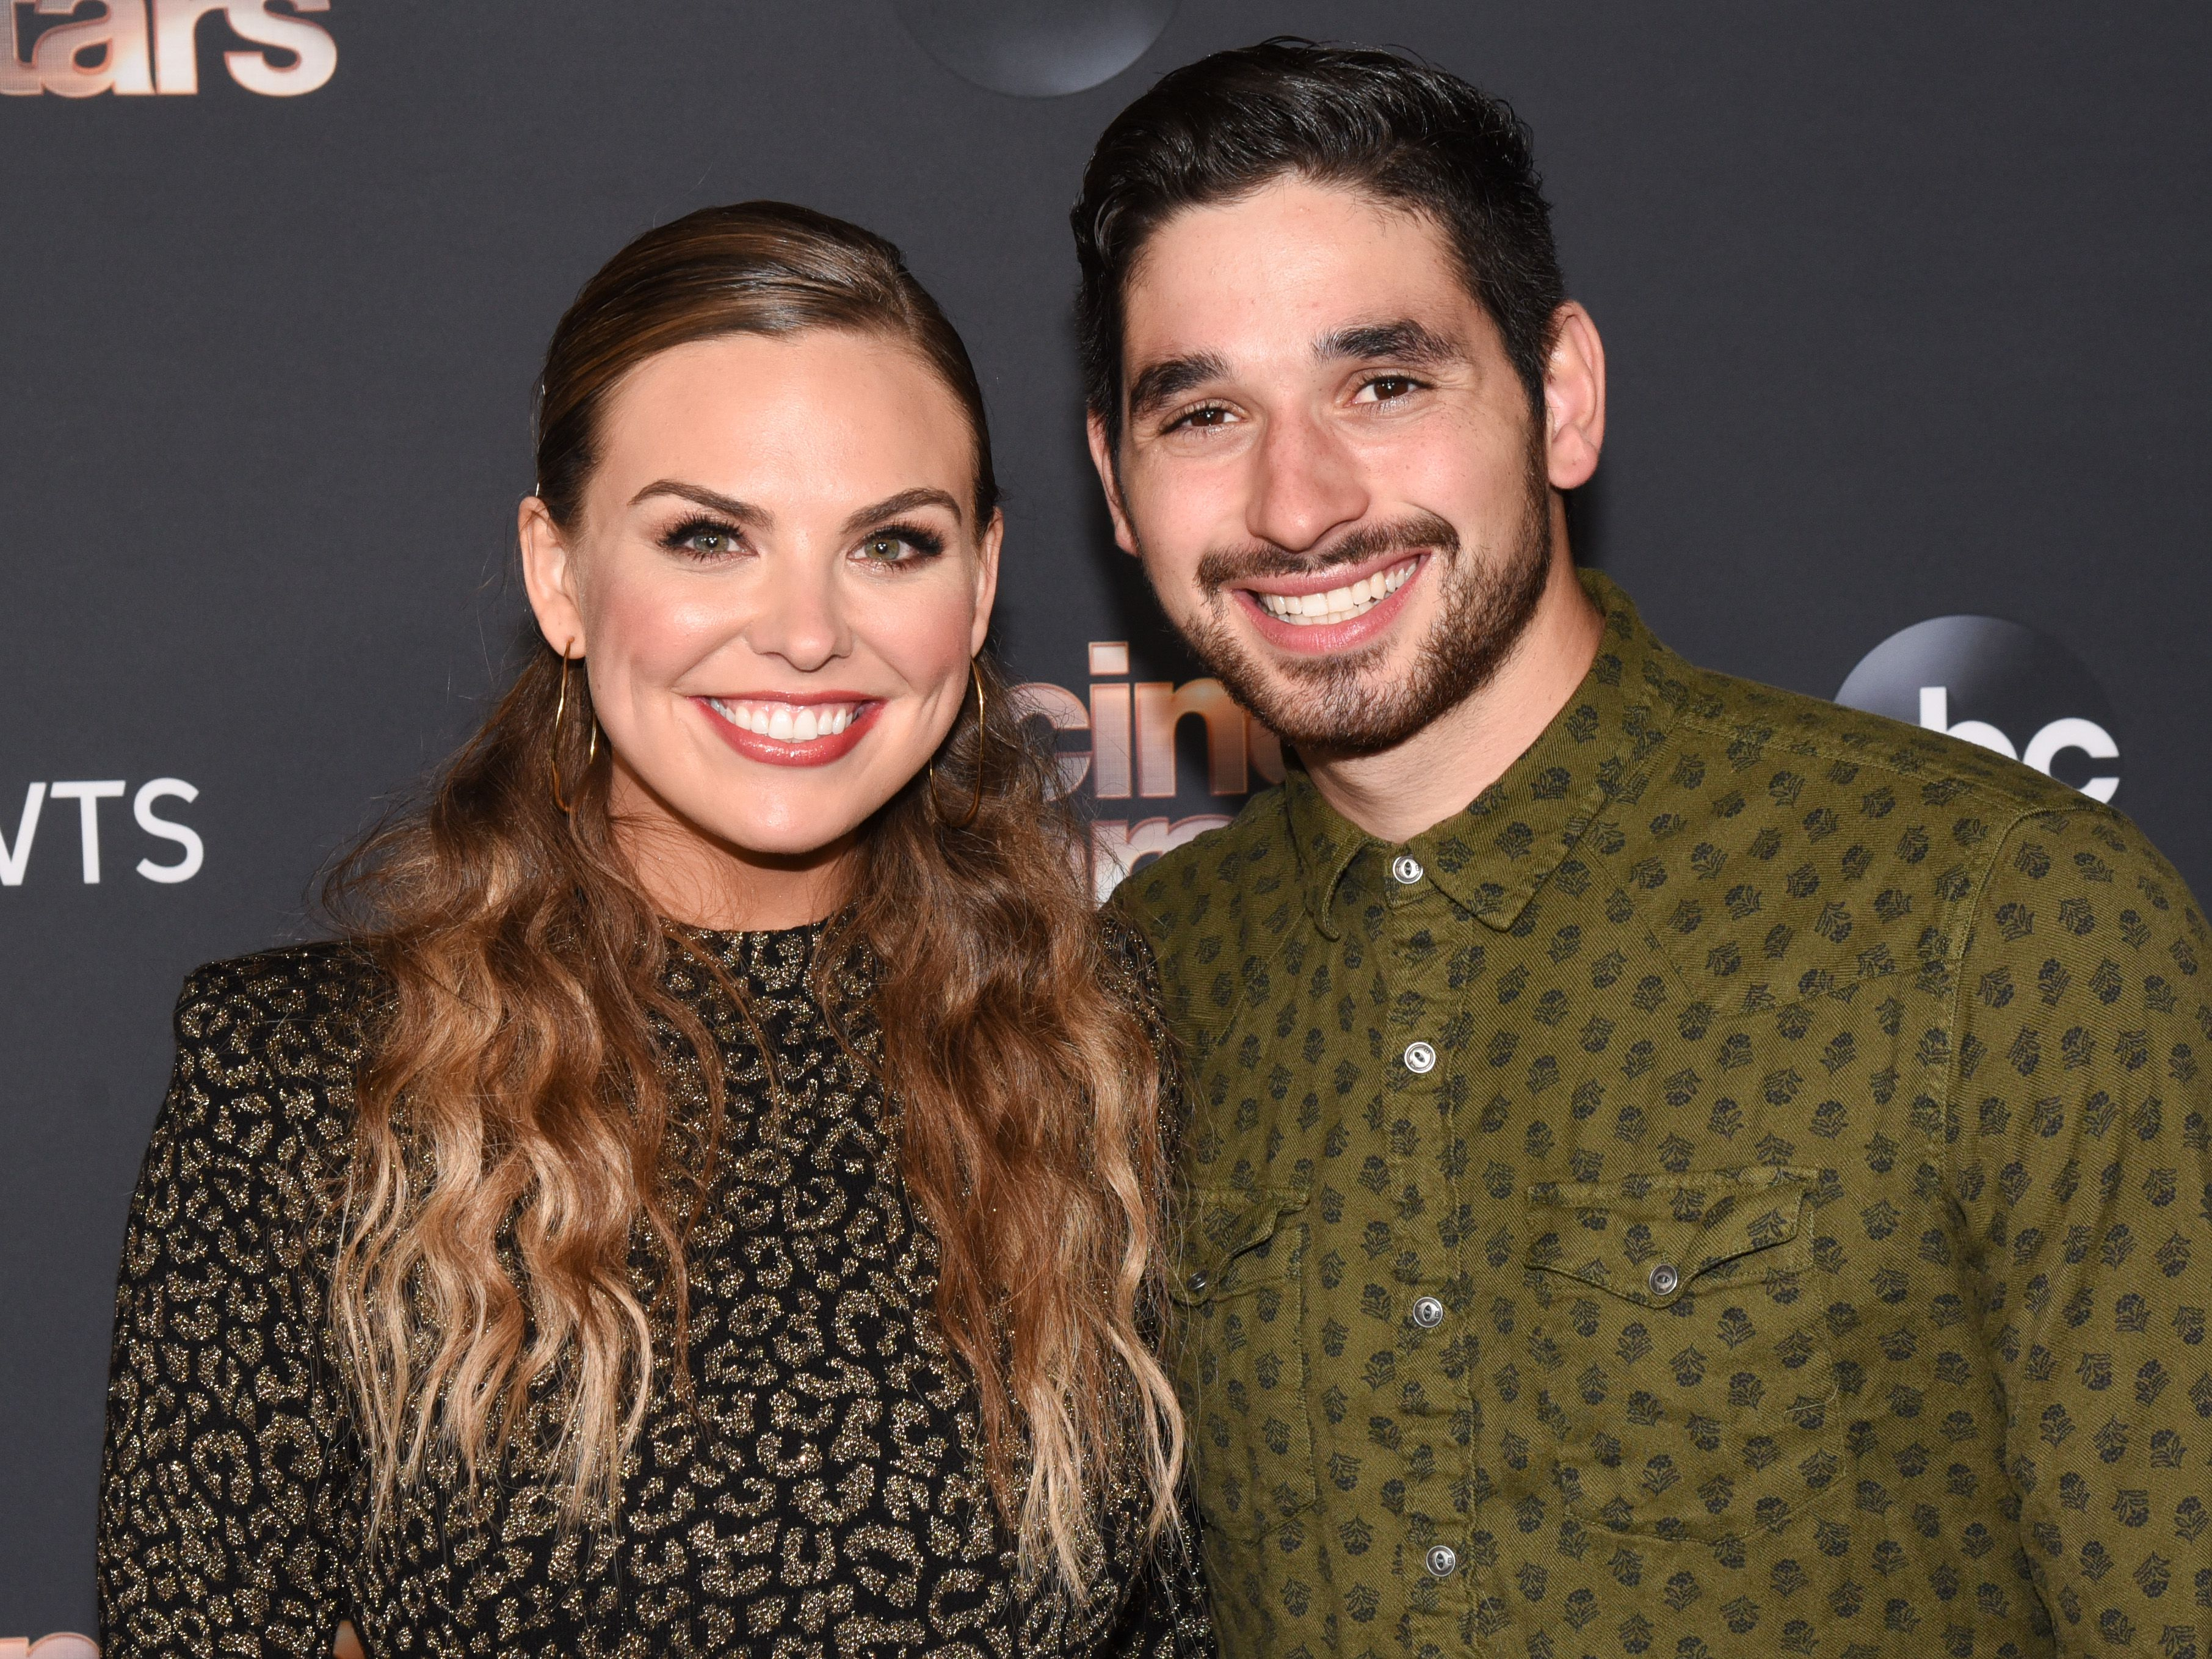 'DWTS' Winner Alan Bersten Admits He's 'So Invested' in 'The Bachelor' Thanks to Partner Hannah Brown